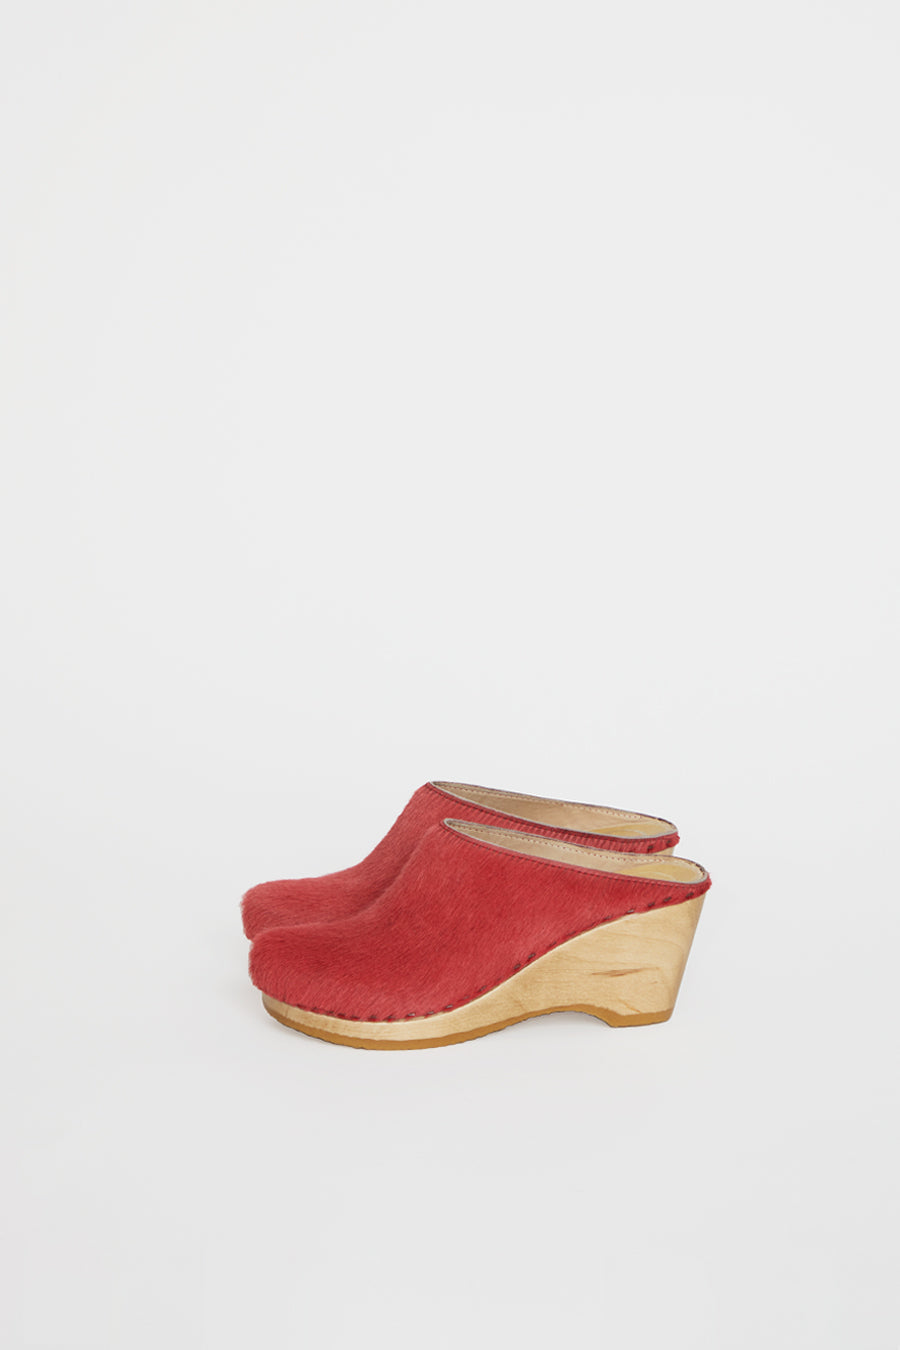 No.6 New School Clog on Wedge in Melon Pony